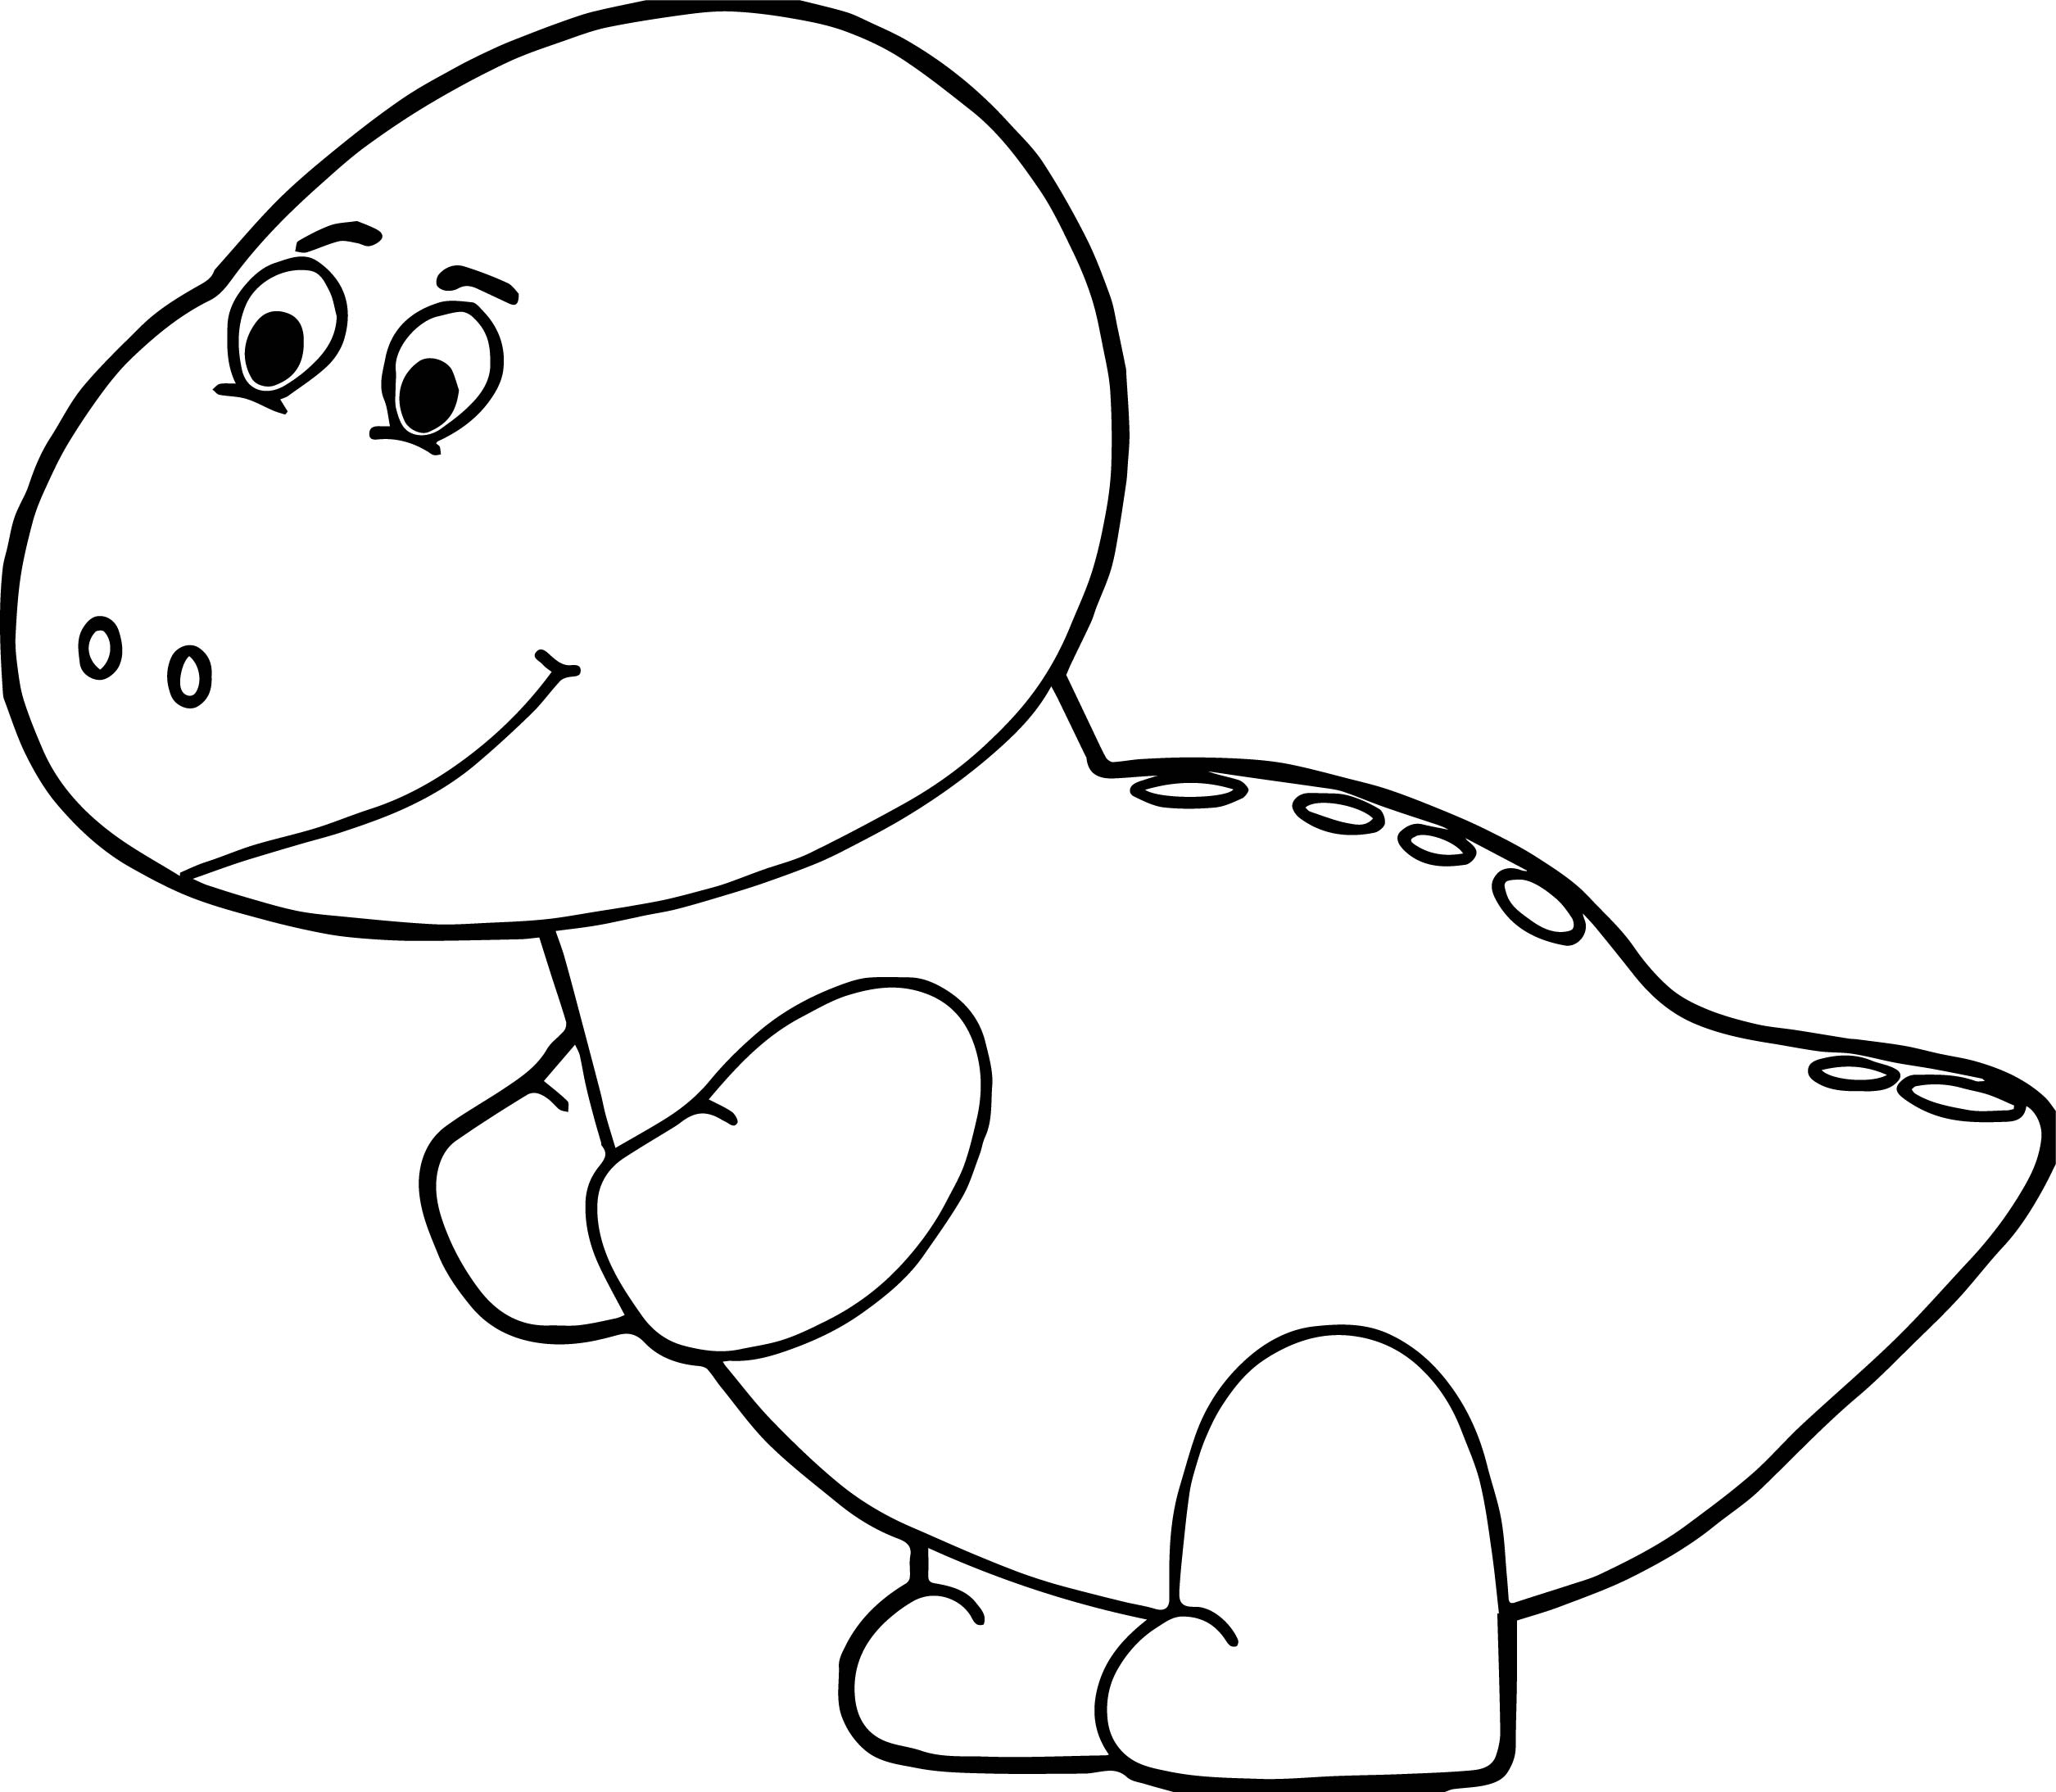 Baby Dinosaur Egg Head Coloring Page